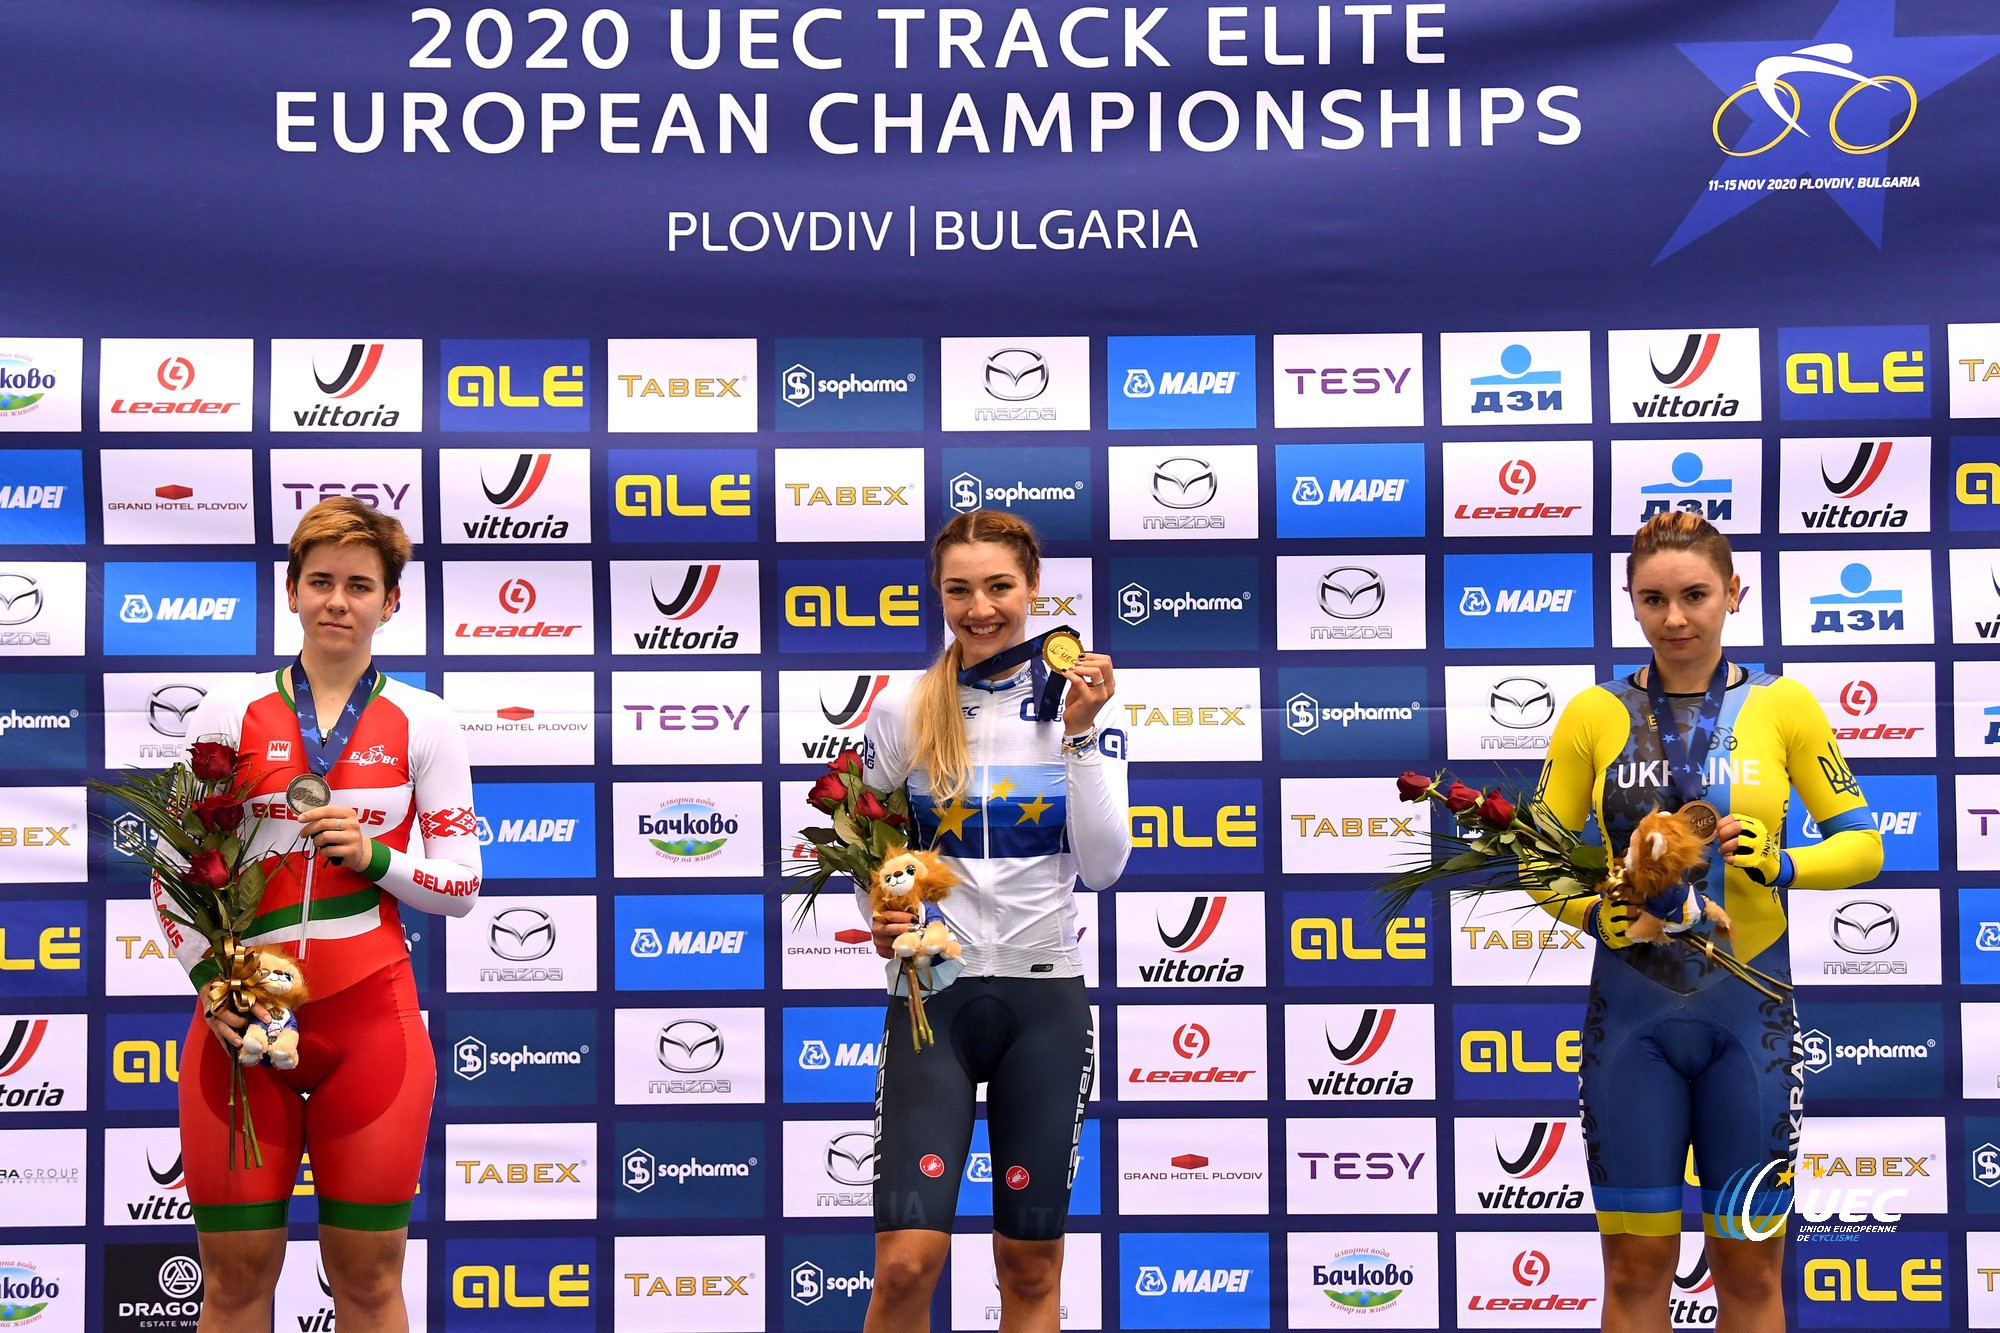 Russia take team sprint titles on opening day of UEC Elite Track European Championships